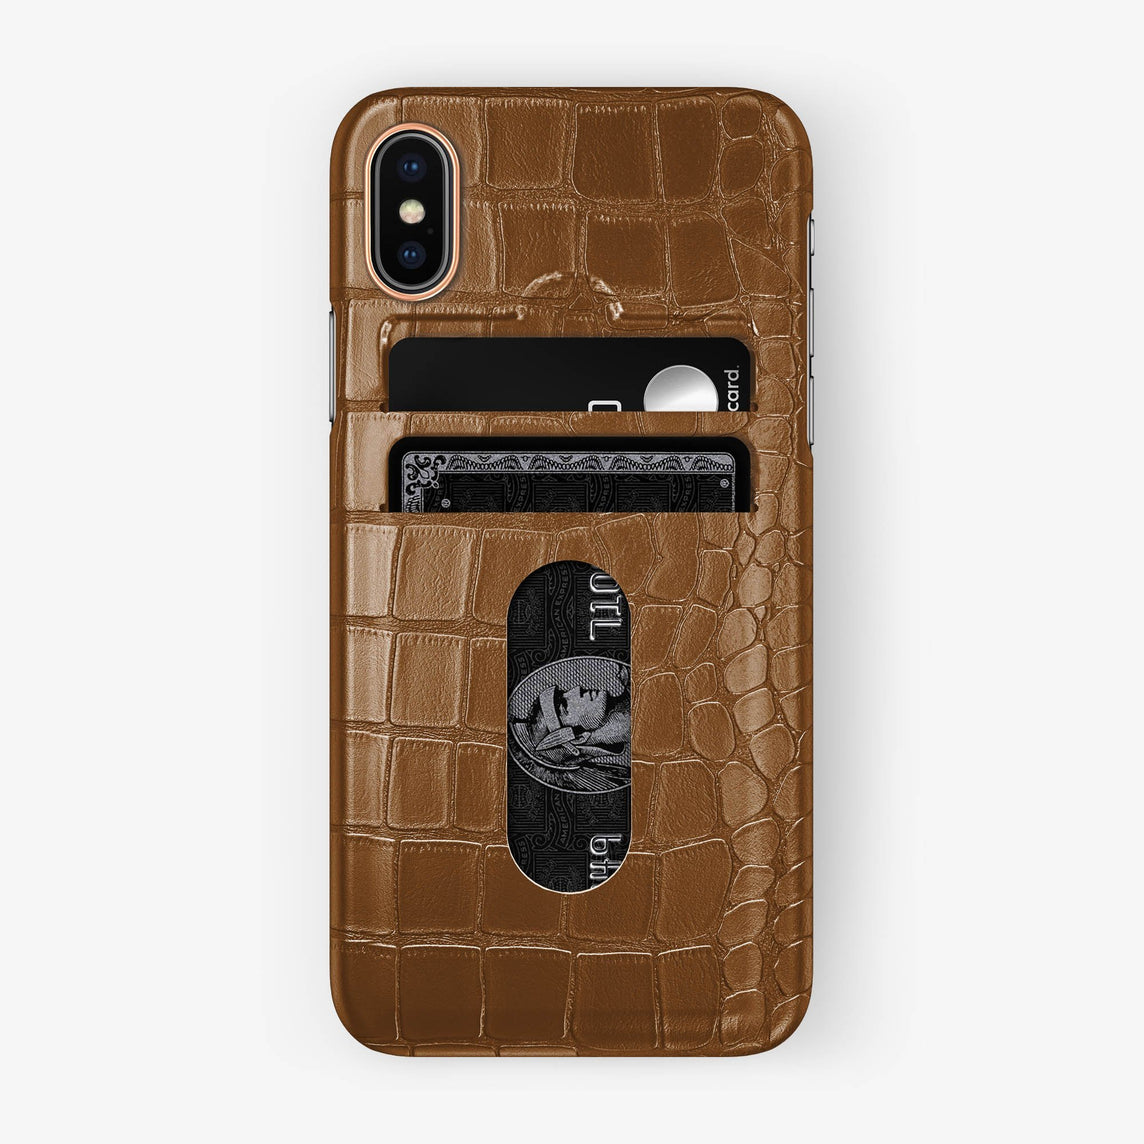 Alligator Card Holder Case iPhone X/Xs | Cognac - Rose Gold with-personalization